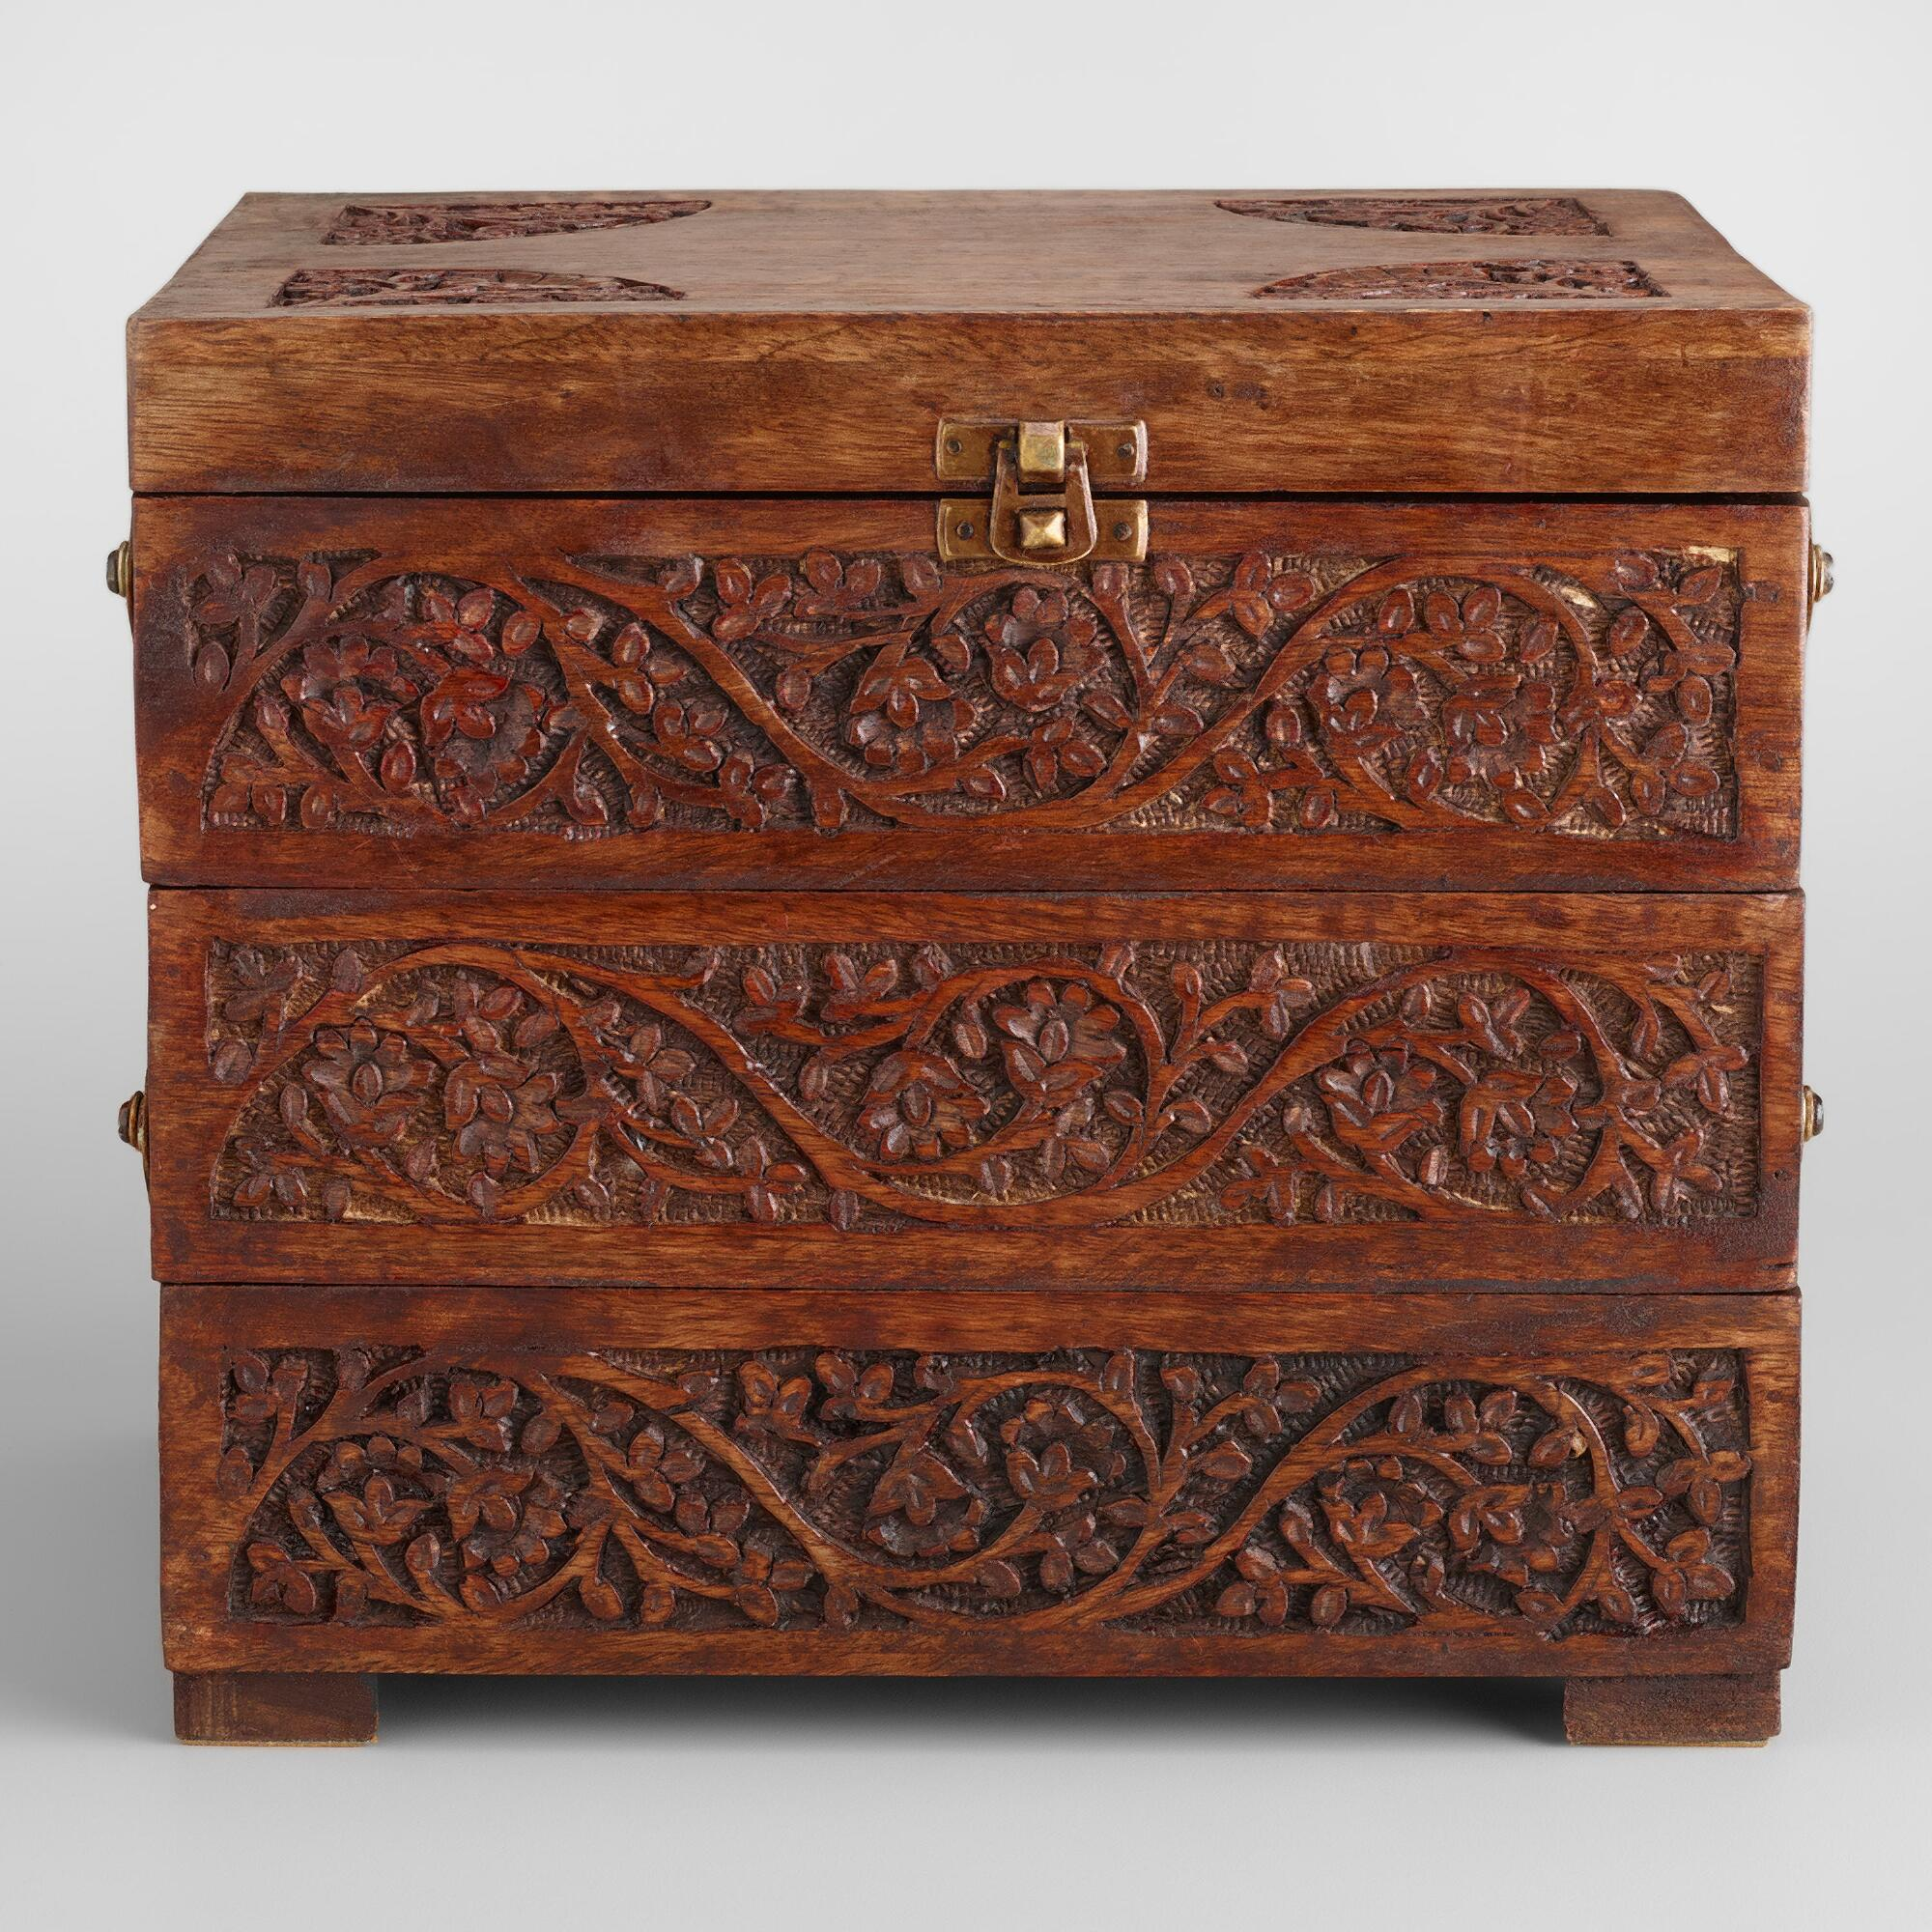 Carved wood tiered jewelry box world market on popscreen for How to carve a wooden ring